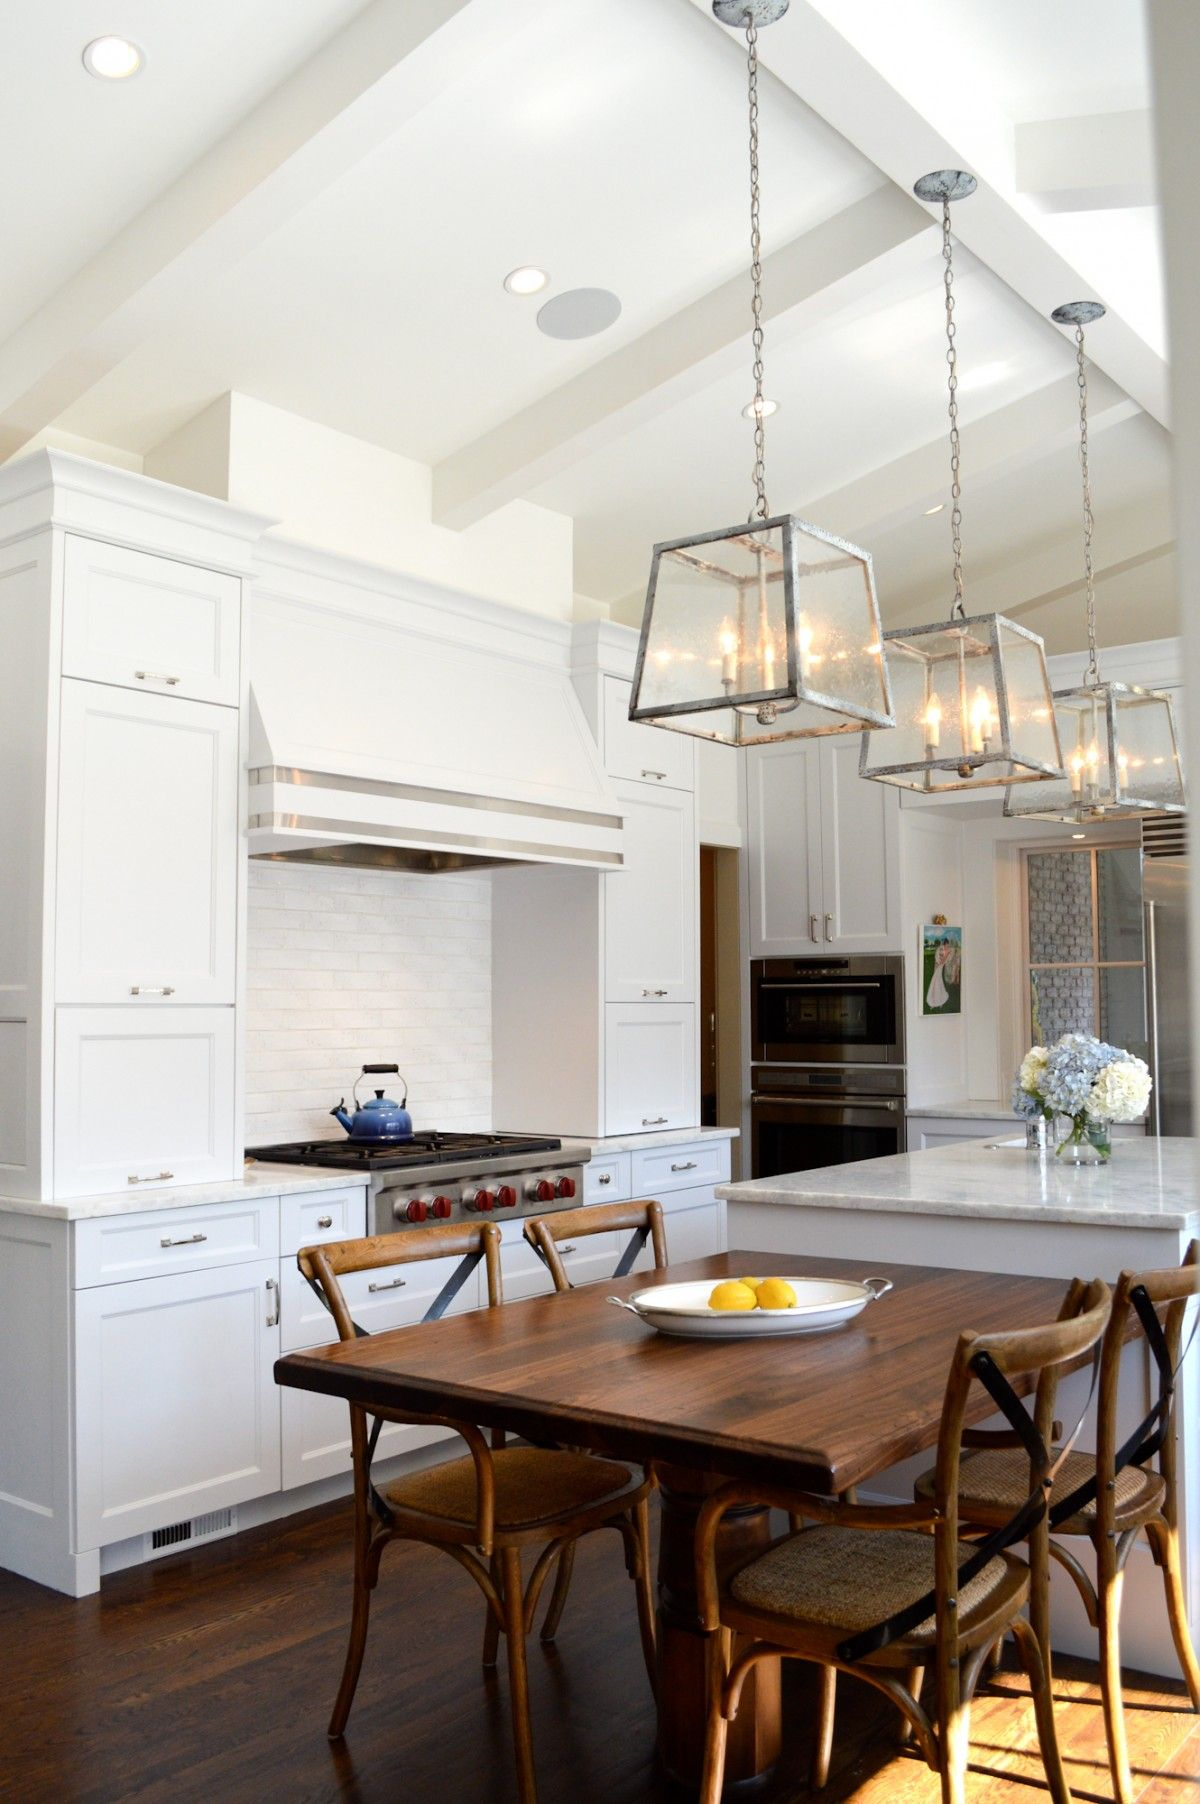 Cabinetry, integrated hood, dining table off island, high ceilings ...